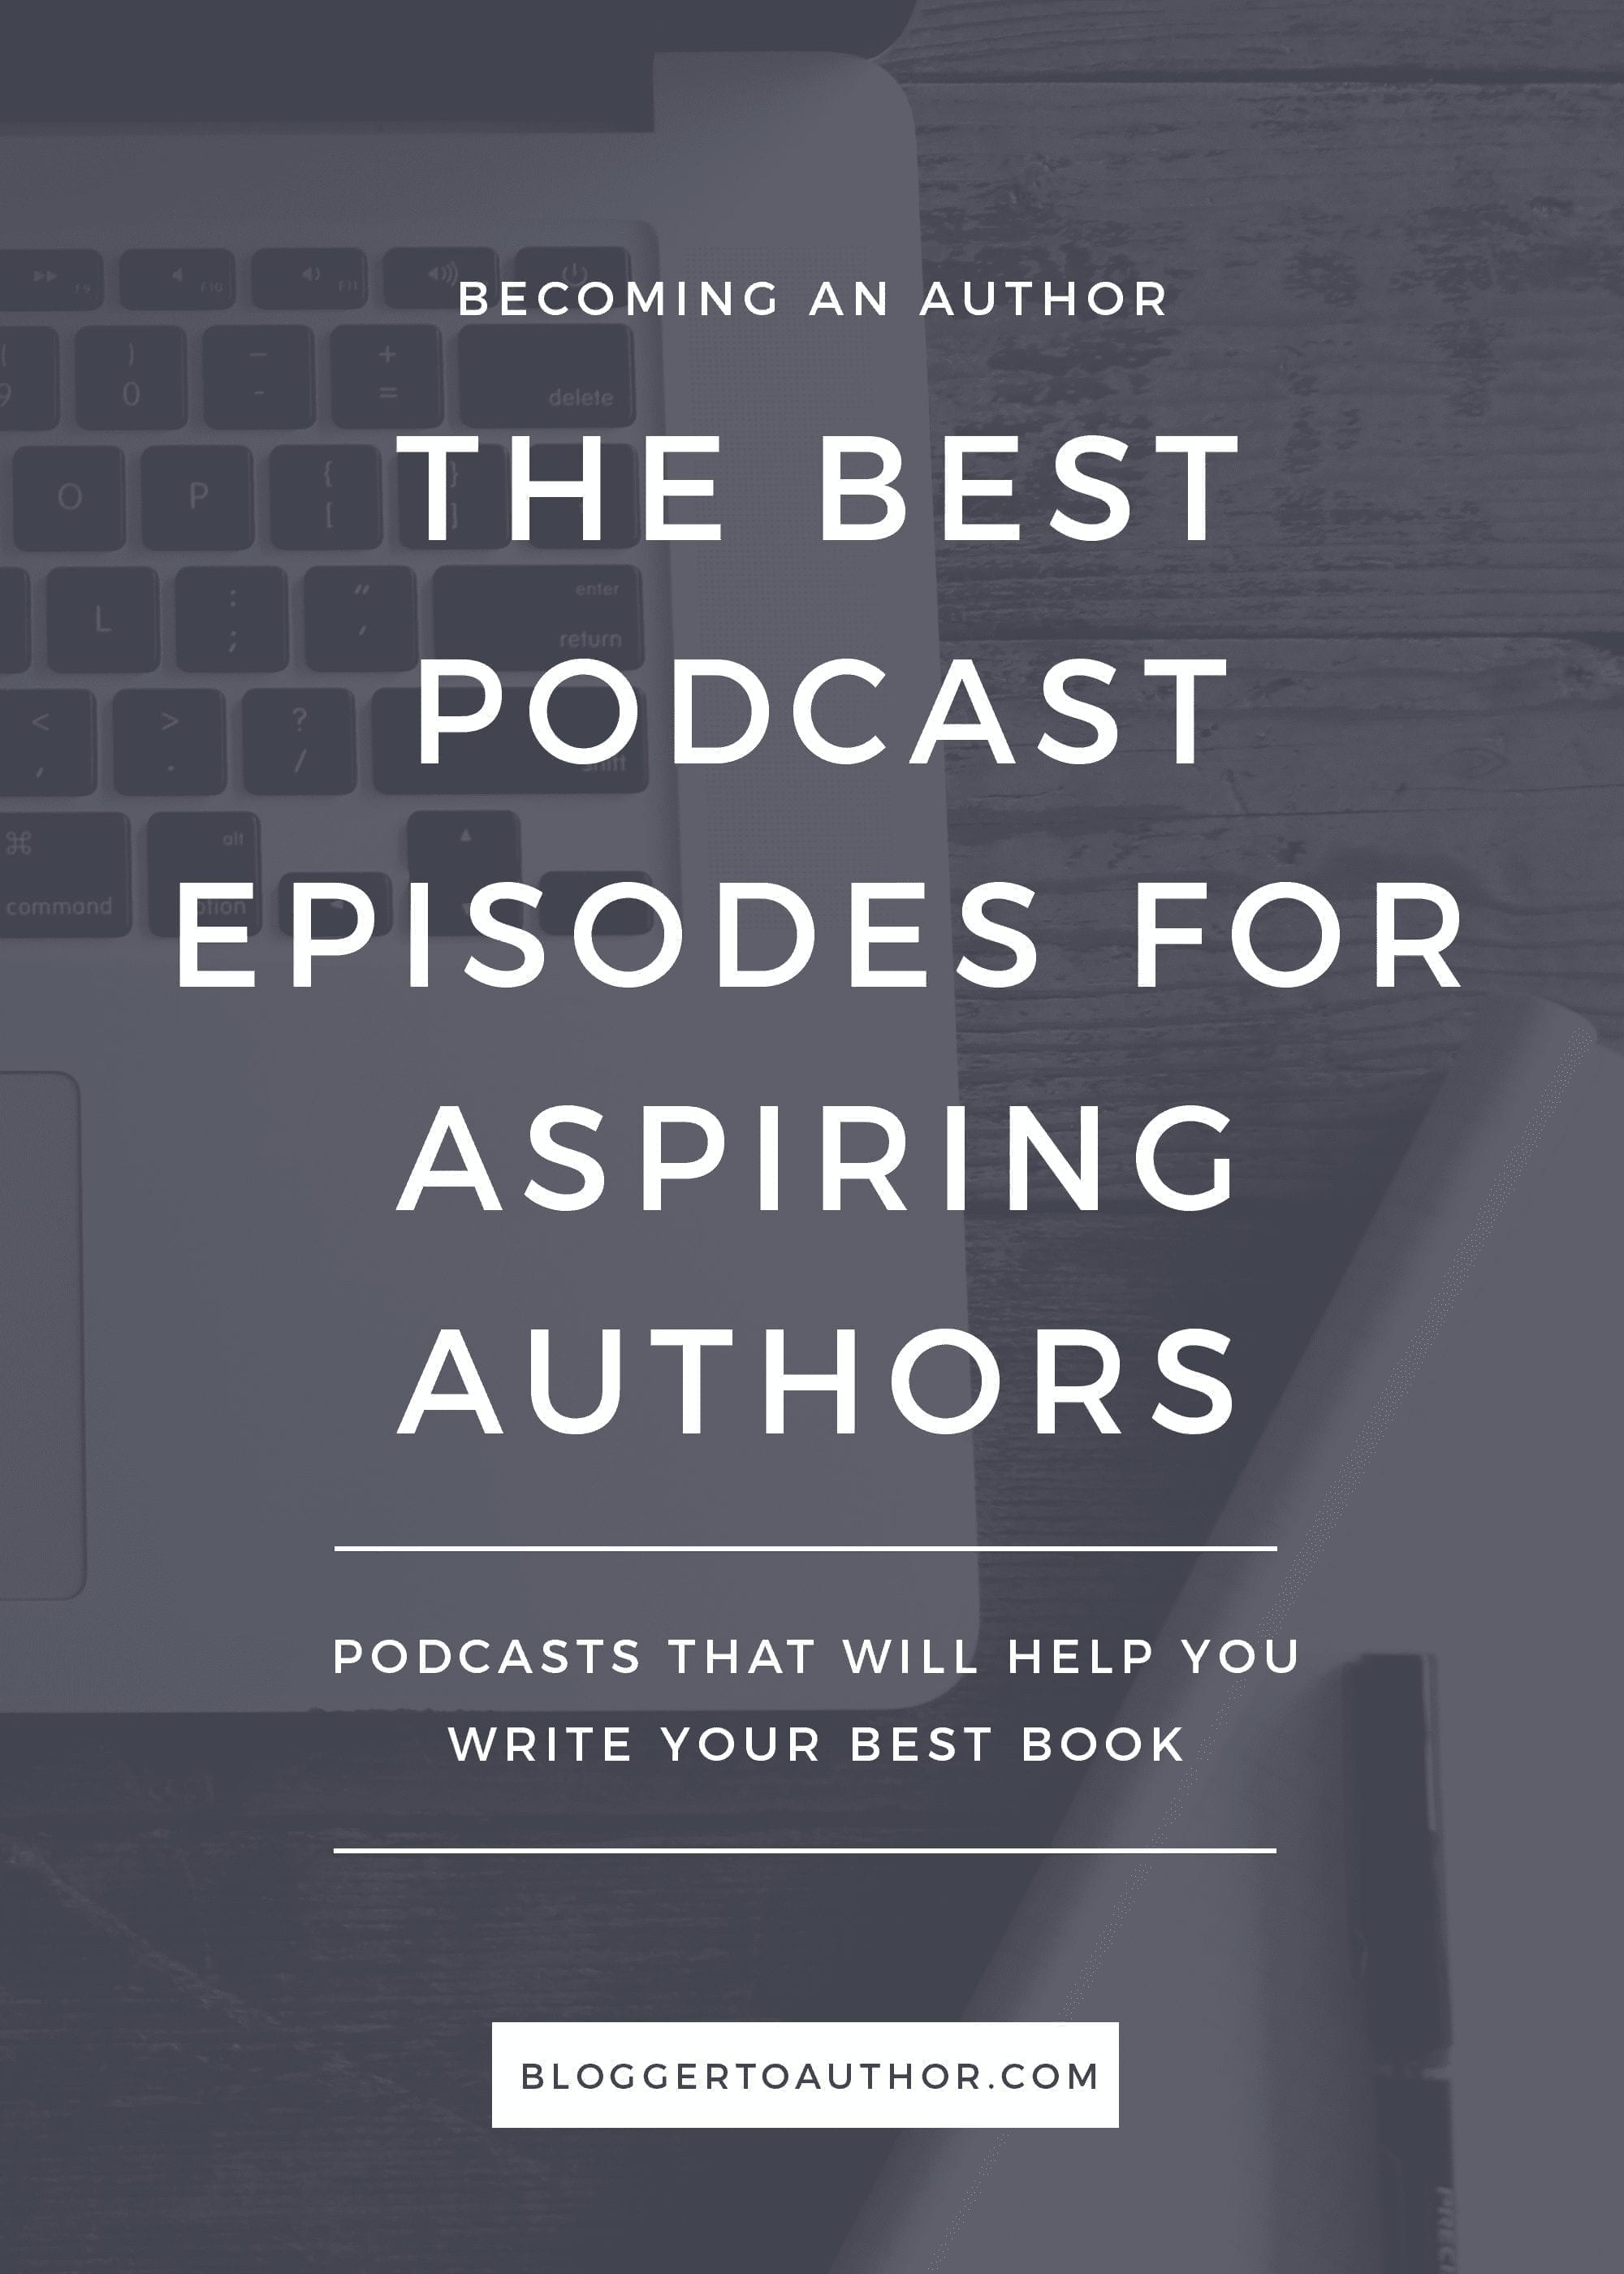 The best podcast episodes for aspiring authors - These podcasts will help you learn how to become an author while you're doing the dishes!